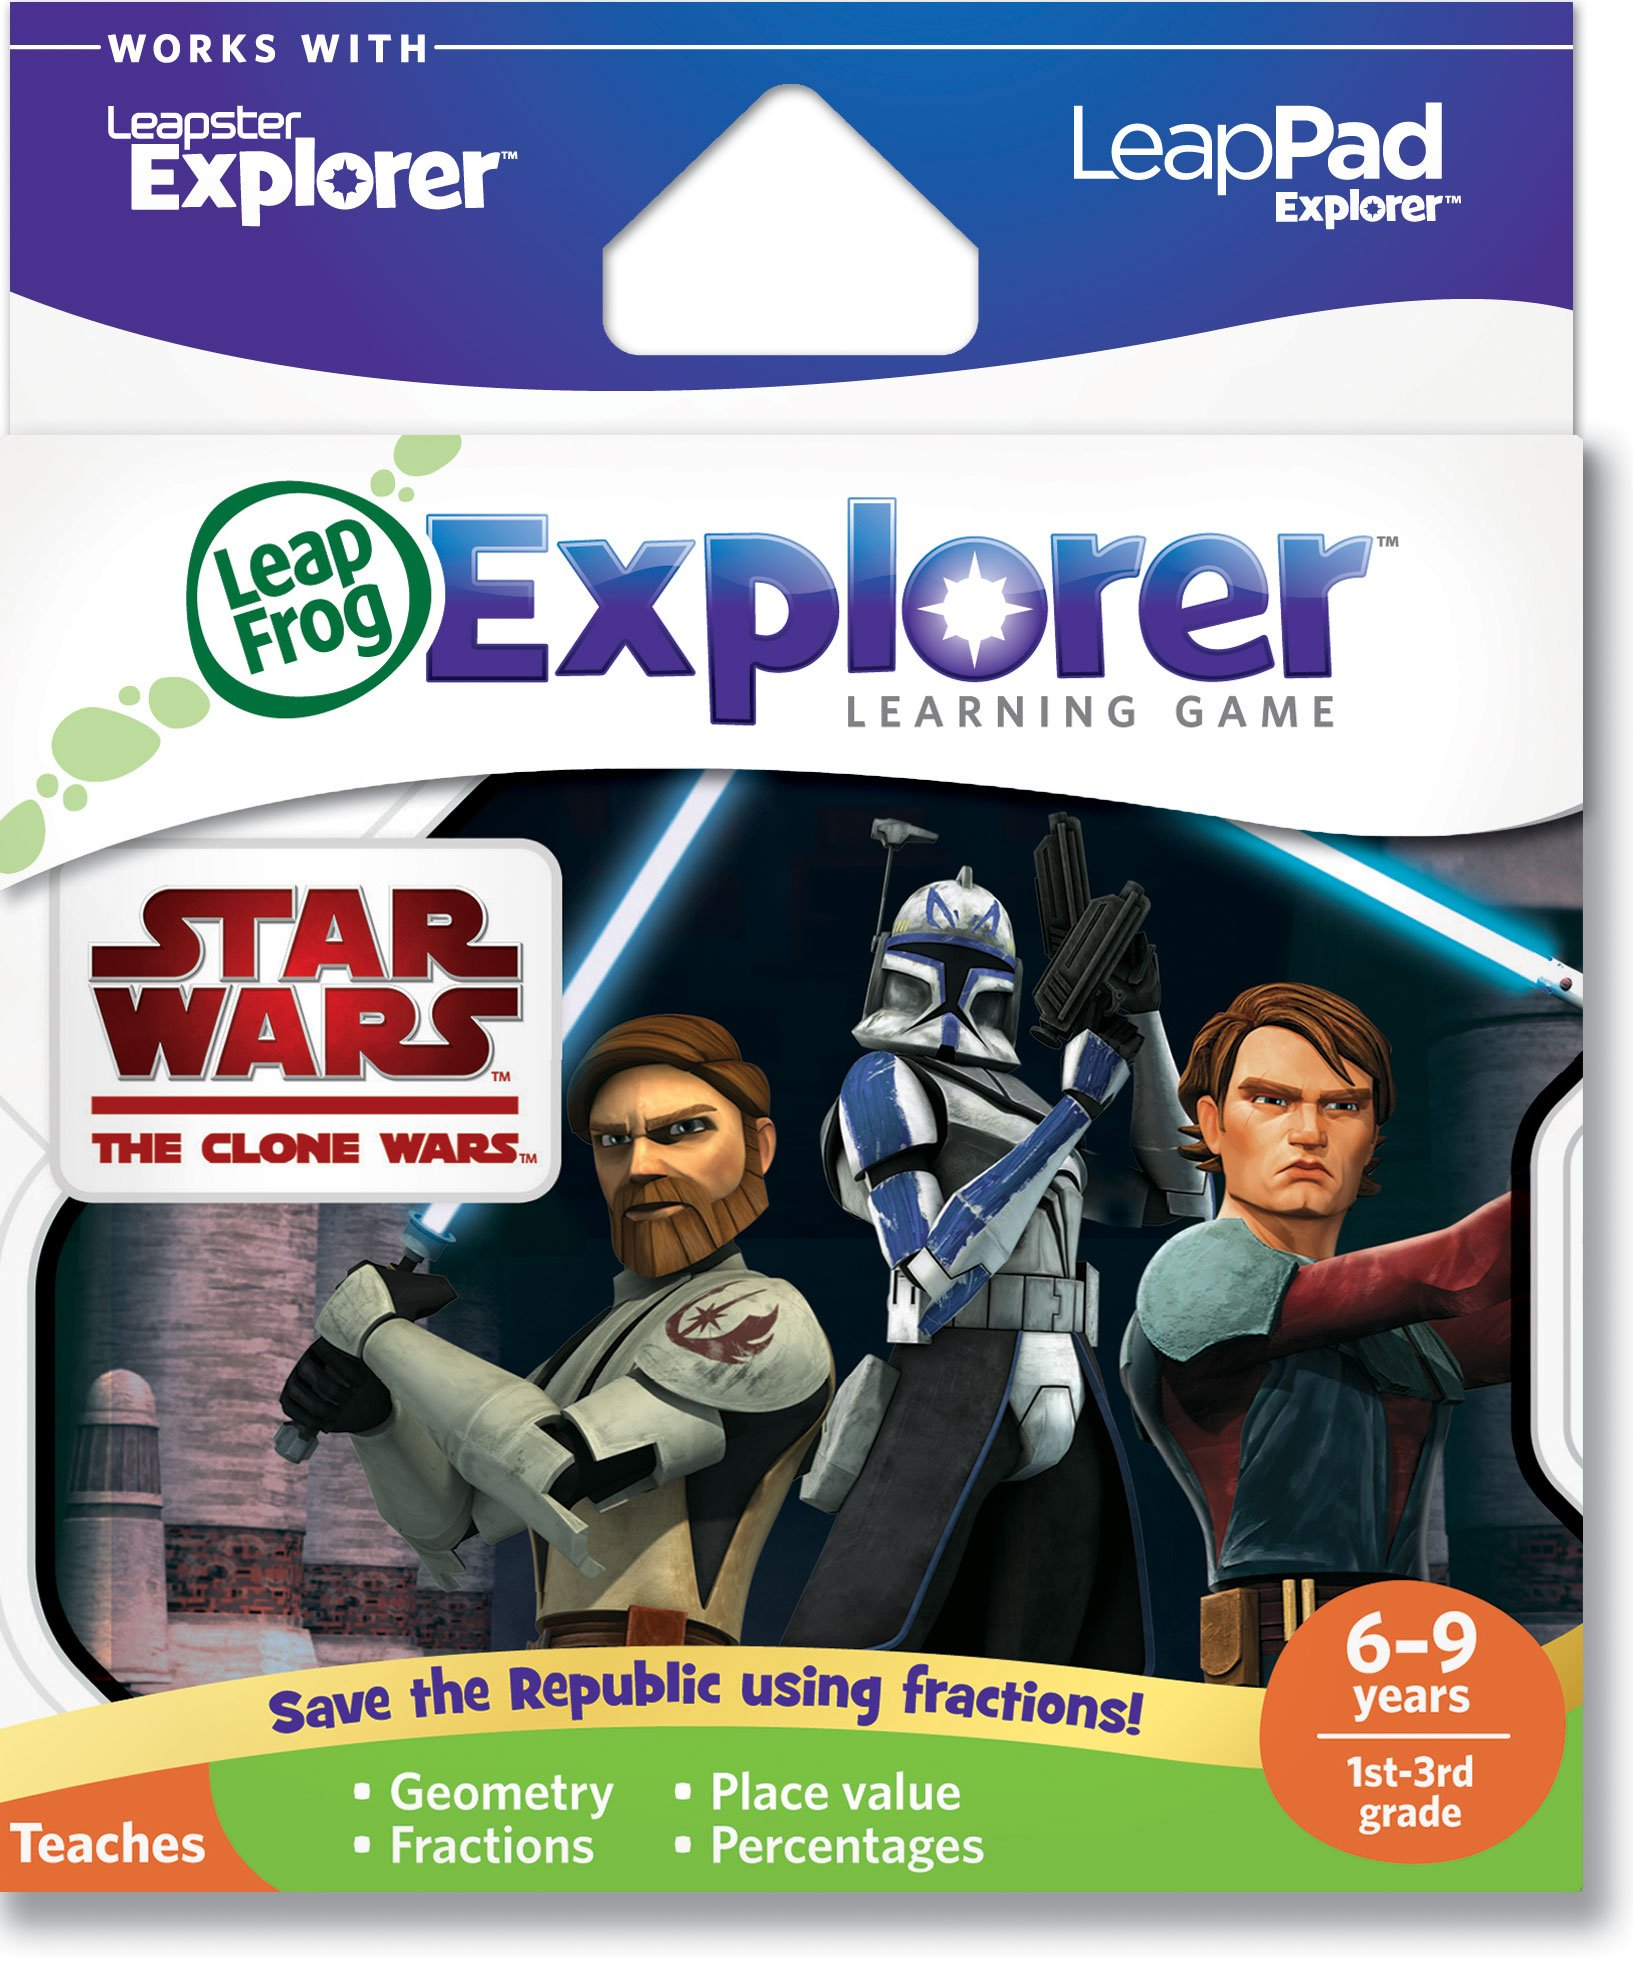 LeapFrog Explorer Learning Game: Star Wars: The Clone Wars (works with LeapPad & Leapster Explorer) by LeapFrog (Image #1)